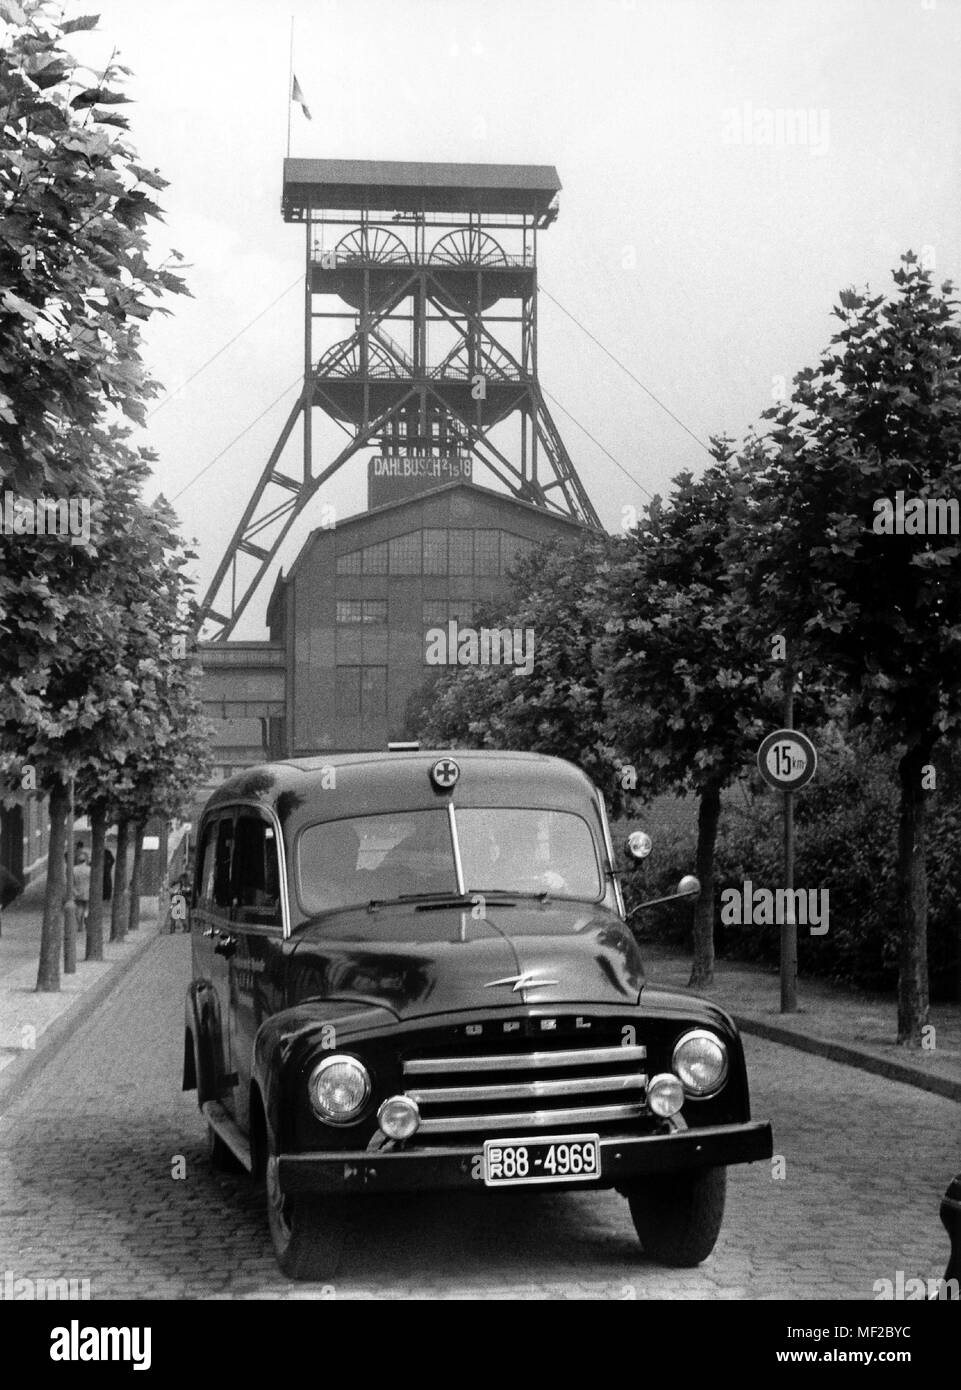 A sanitary car leaves the colliery. In the background, the demand tower of Schacht Dahlbusch 2/5/8 with a flag waving at half mast. On August 3, 1955 occurred at the colliery Dahlbusch in Gelsenkirchen between the tenth and eleventh sole on shaft 8 a crash explosion in which a total of 41 miners were killed and 21 were seriously injured. Twenty-five buddies who were close to the blast furnace could not be rescued due to the strong mine fire in the affected Strebs. After the rescue work was stopped, these corridors were walled up to prevent the fire from spreading. As early as May 1955, three m - Stock Image